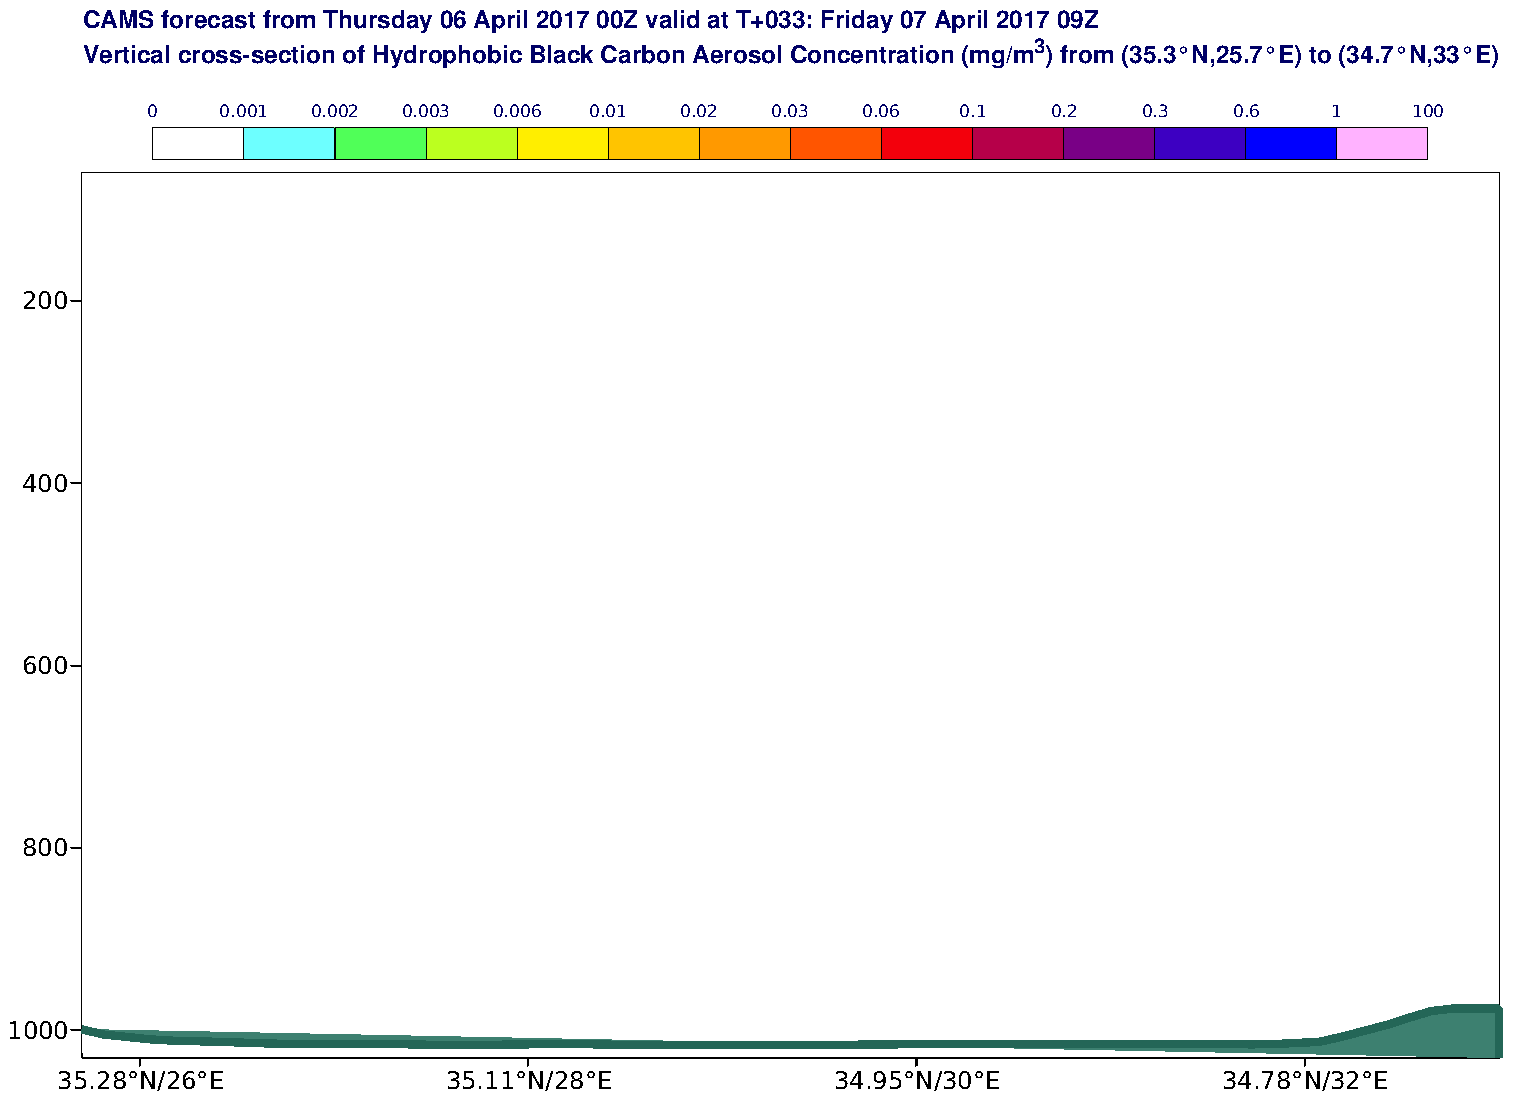 Vertical cross-section of Hydrophobic Black Carbon Aerosol Concentration (mg/m3) valid at T33 - 2017-04-07 09:00